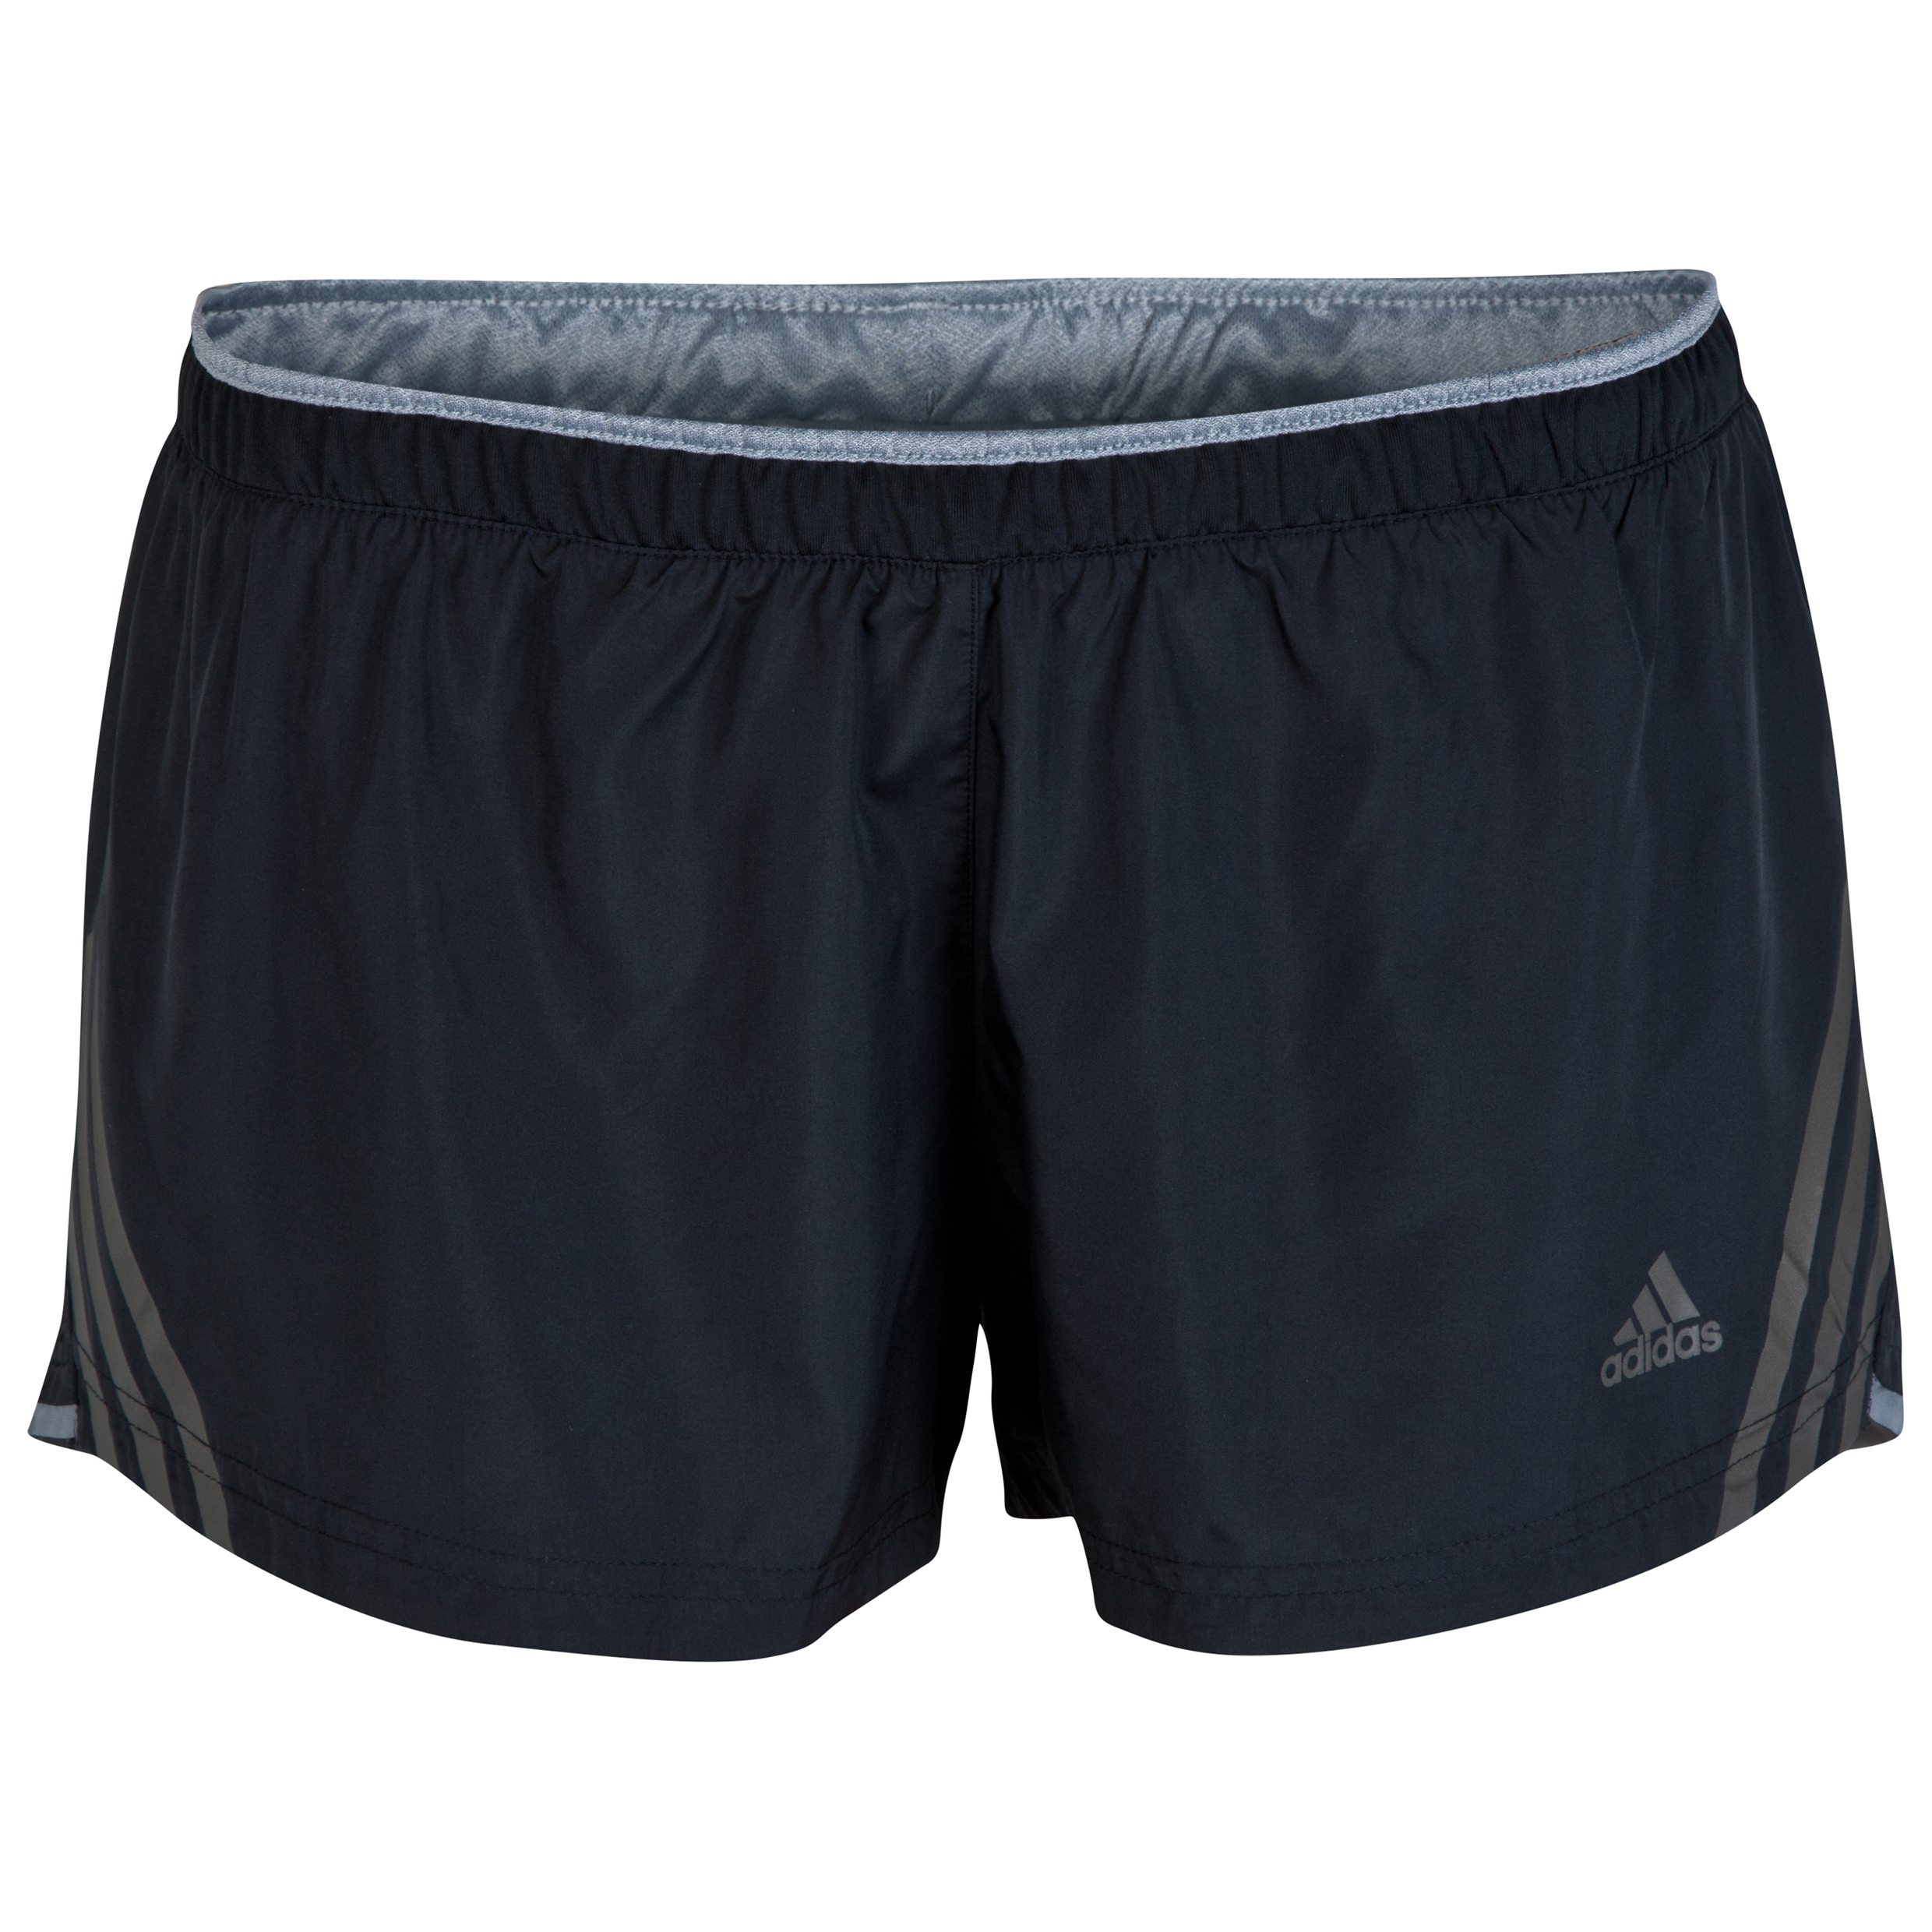 Adidas Supernova Glide Short W Black